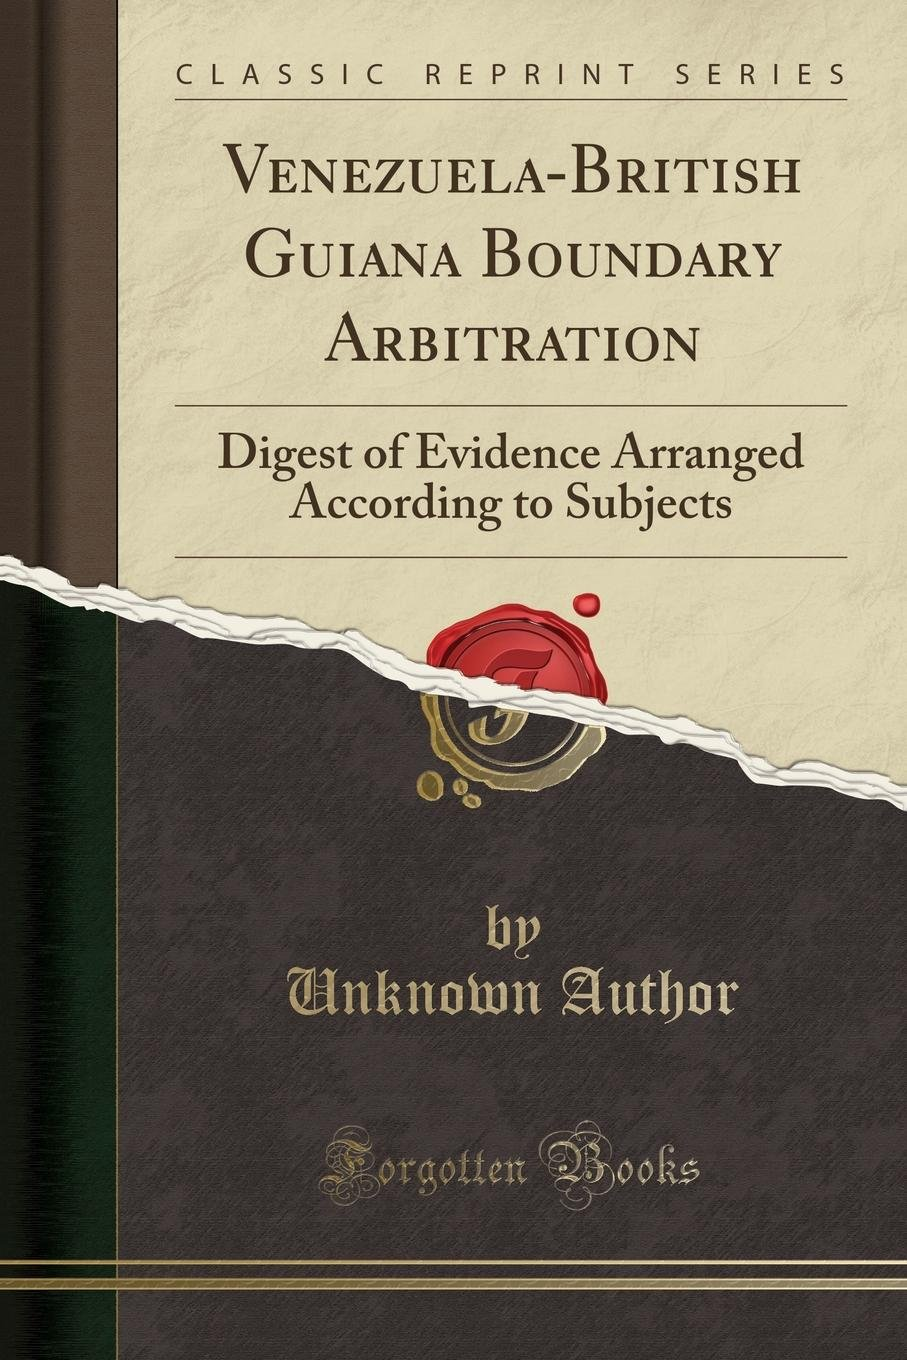 Read Online Venezuela-British Guiana Boundary Arbitration: Digest of Evidence Arranged According to Subjects (Classic Reprint) PDF